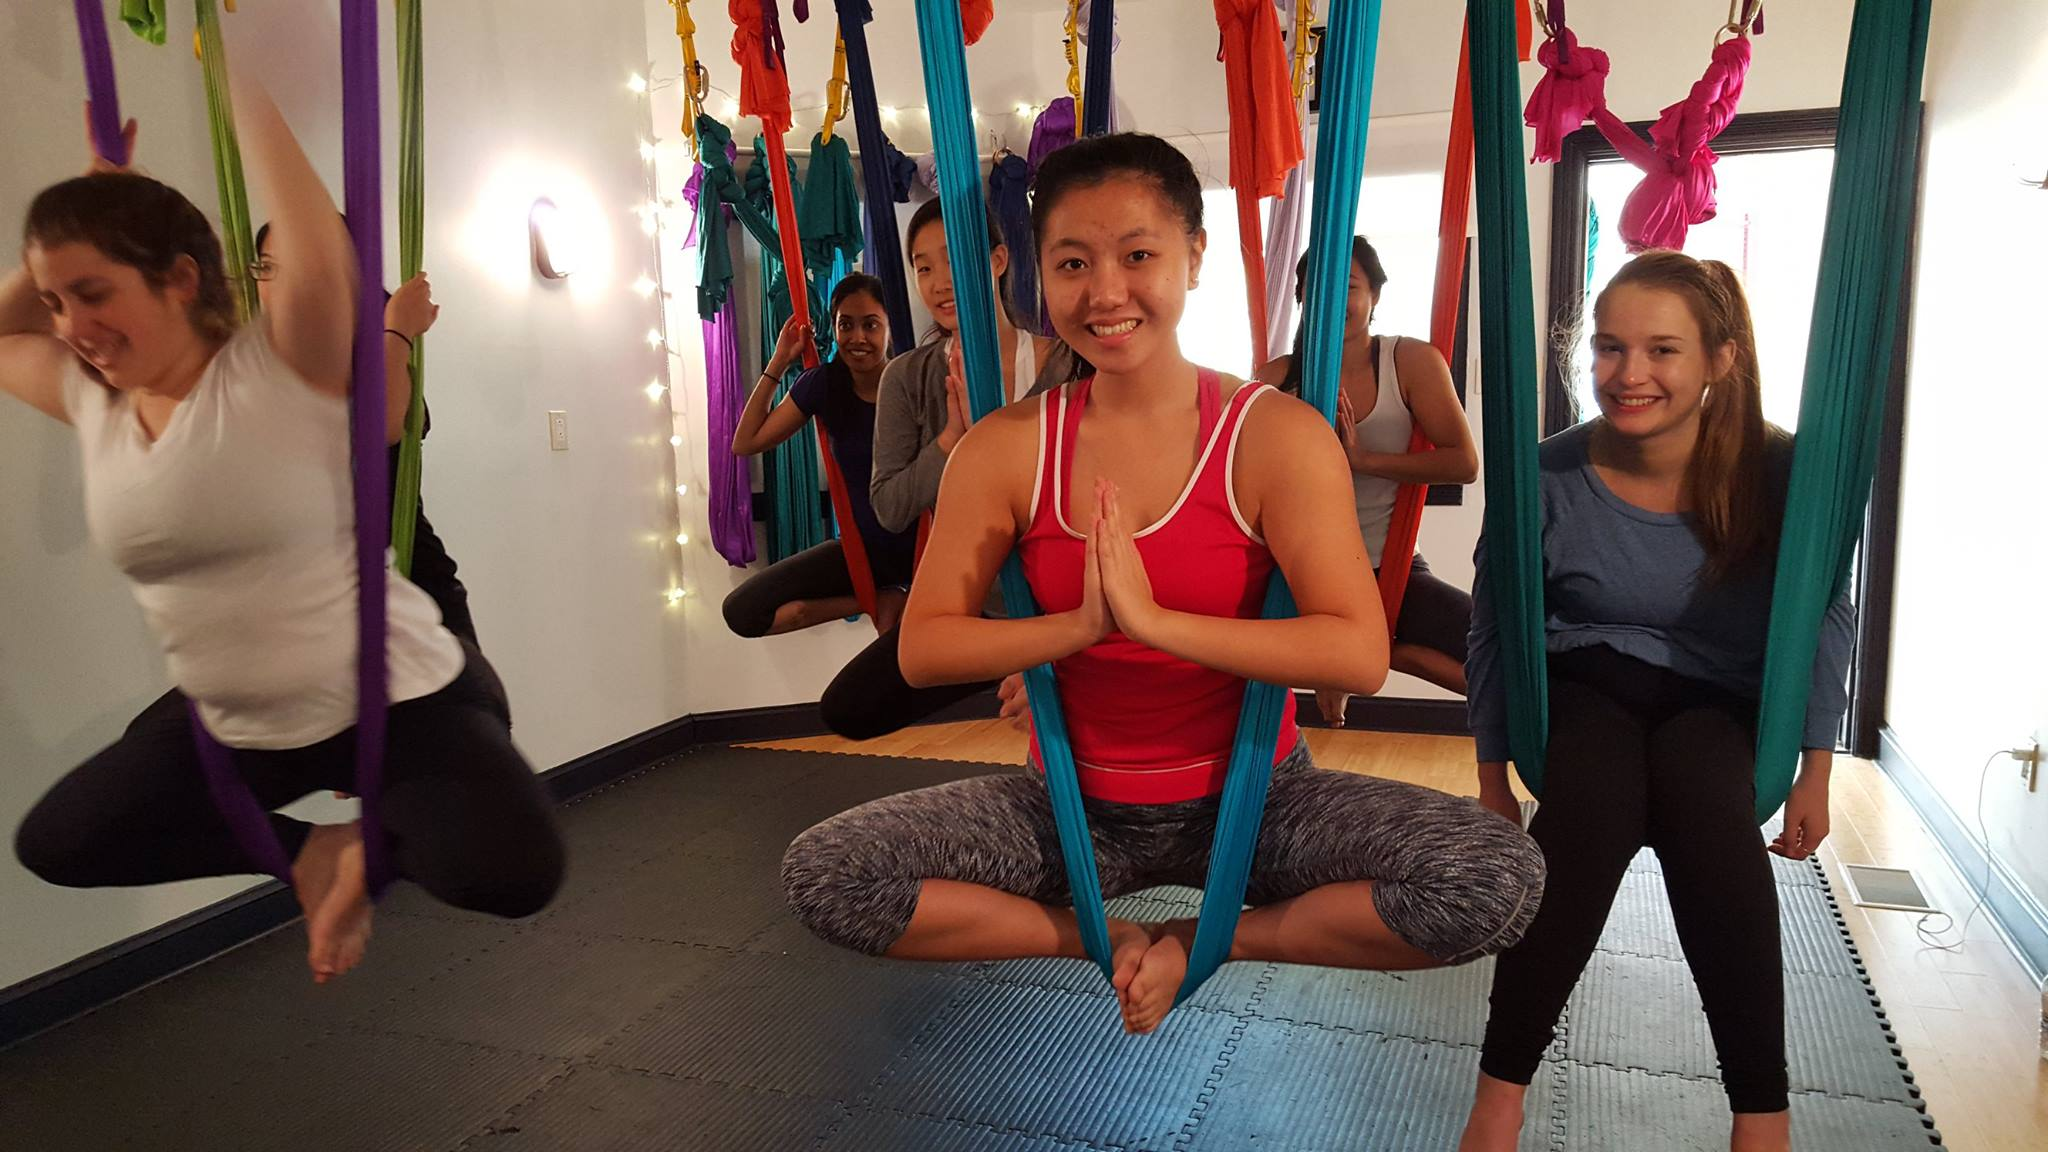 Photo via Kaya Aerial Yoga